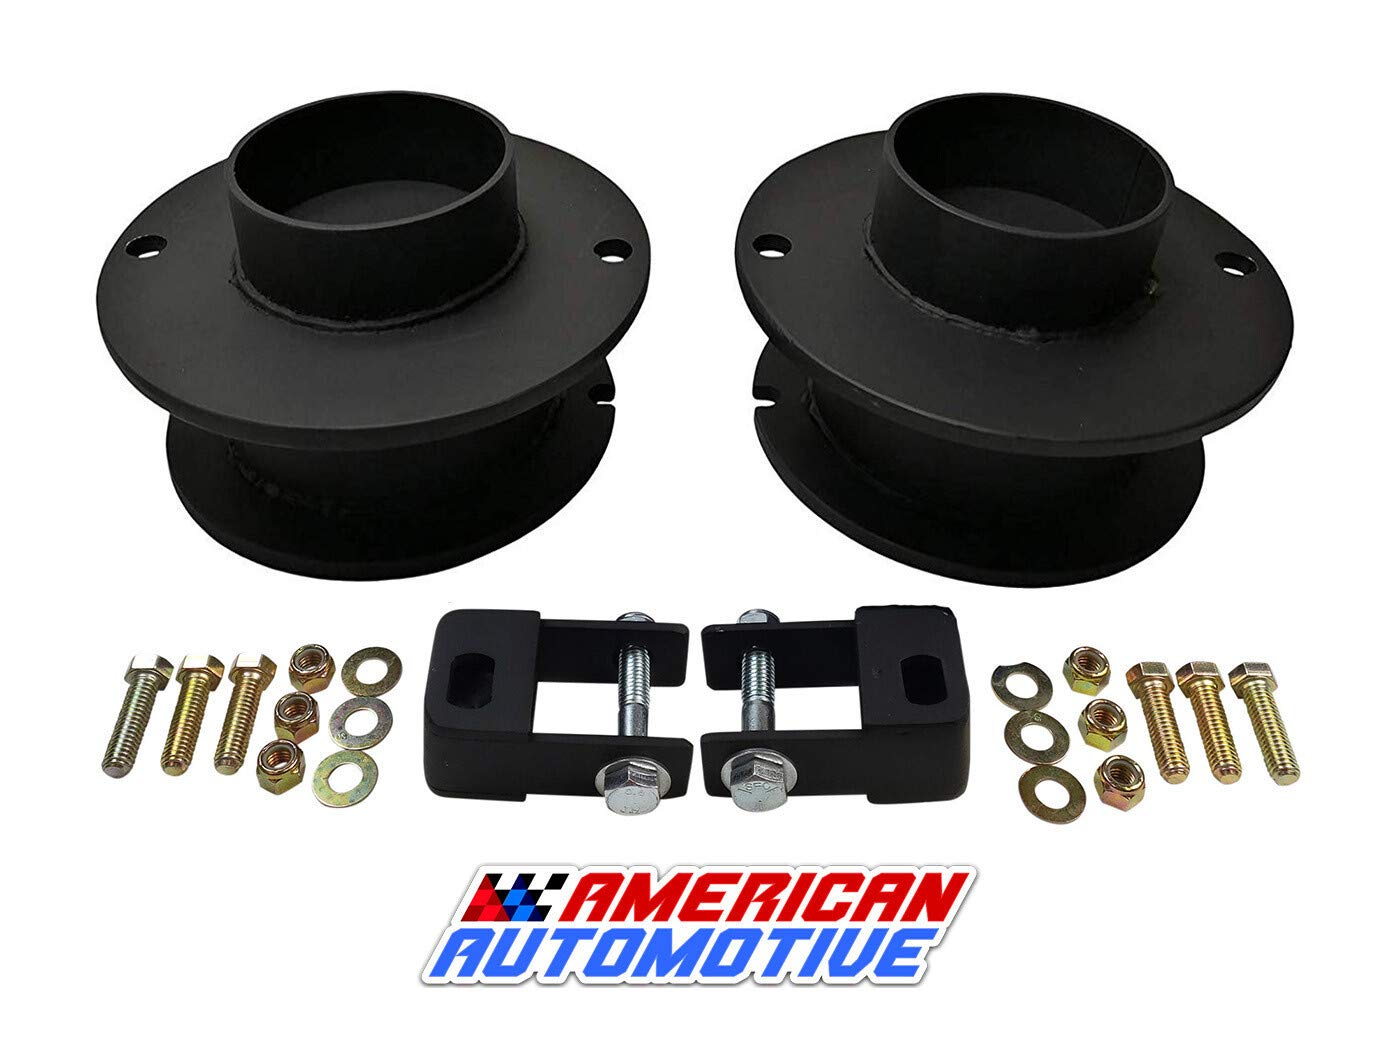 Shock Extenders American Automotive Front Lift Kit for Ram 2500 3500 2 4WD Front Steel Coil Spring Spacers